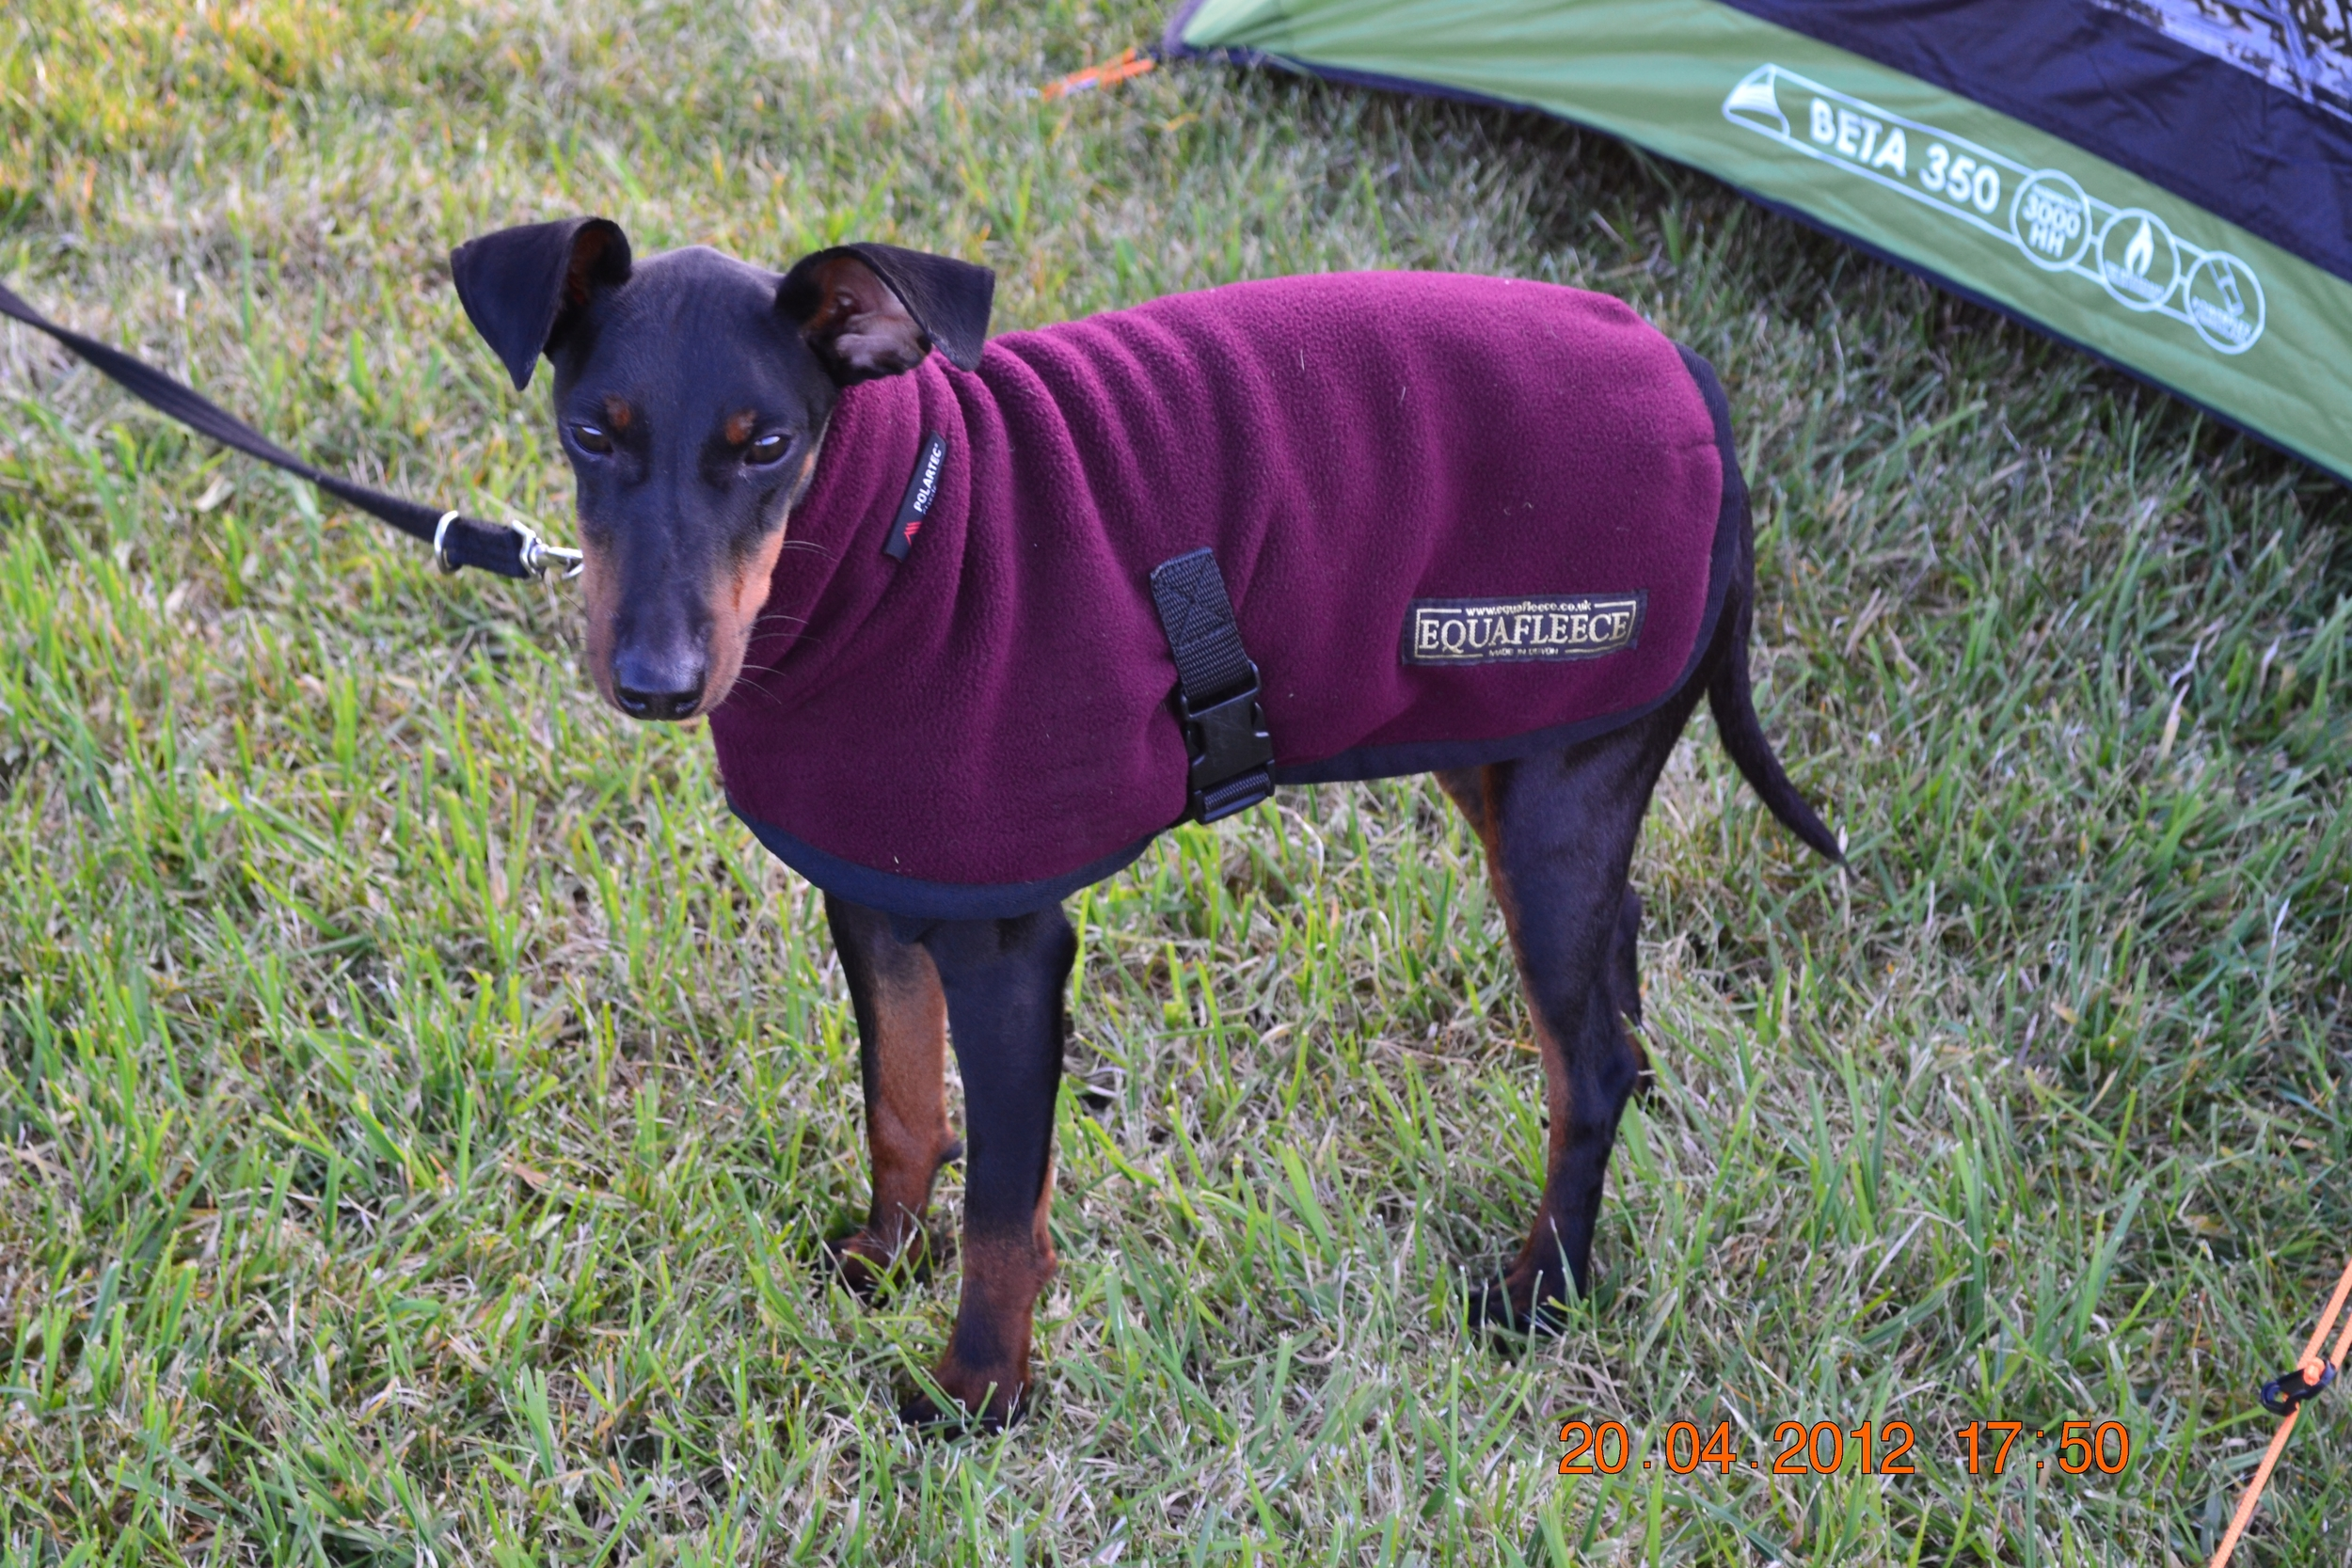 Chester, Manchester Terrier, (age 11 months) loves to play fetch, doesn't like going out in the rain